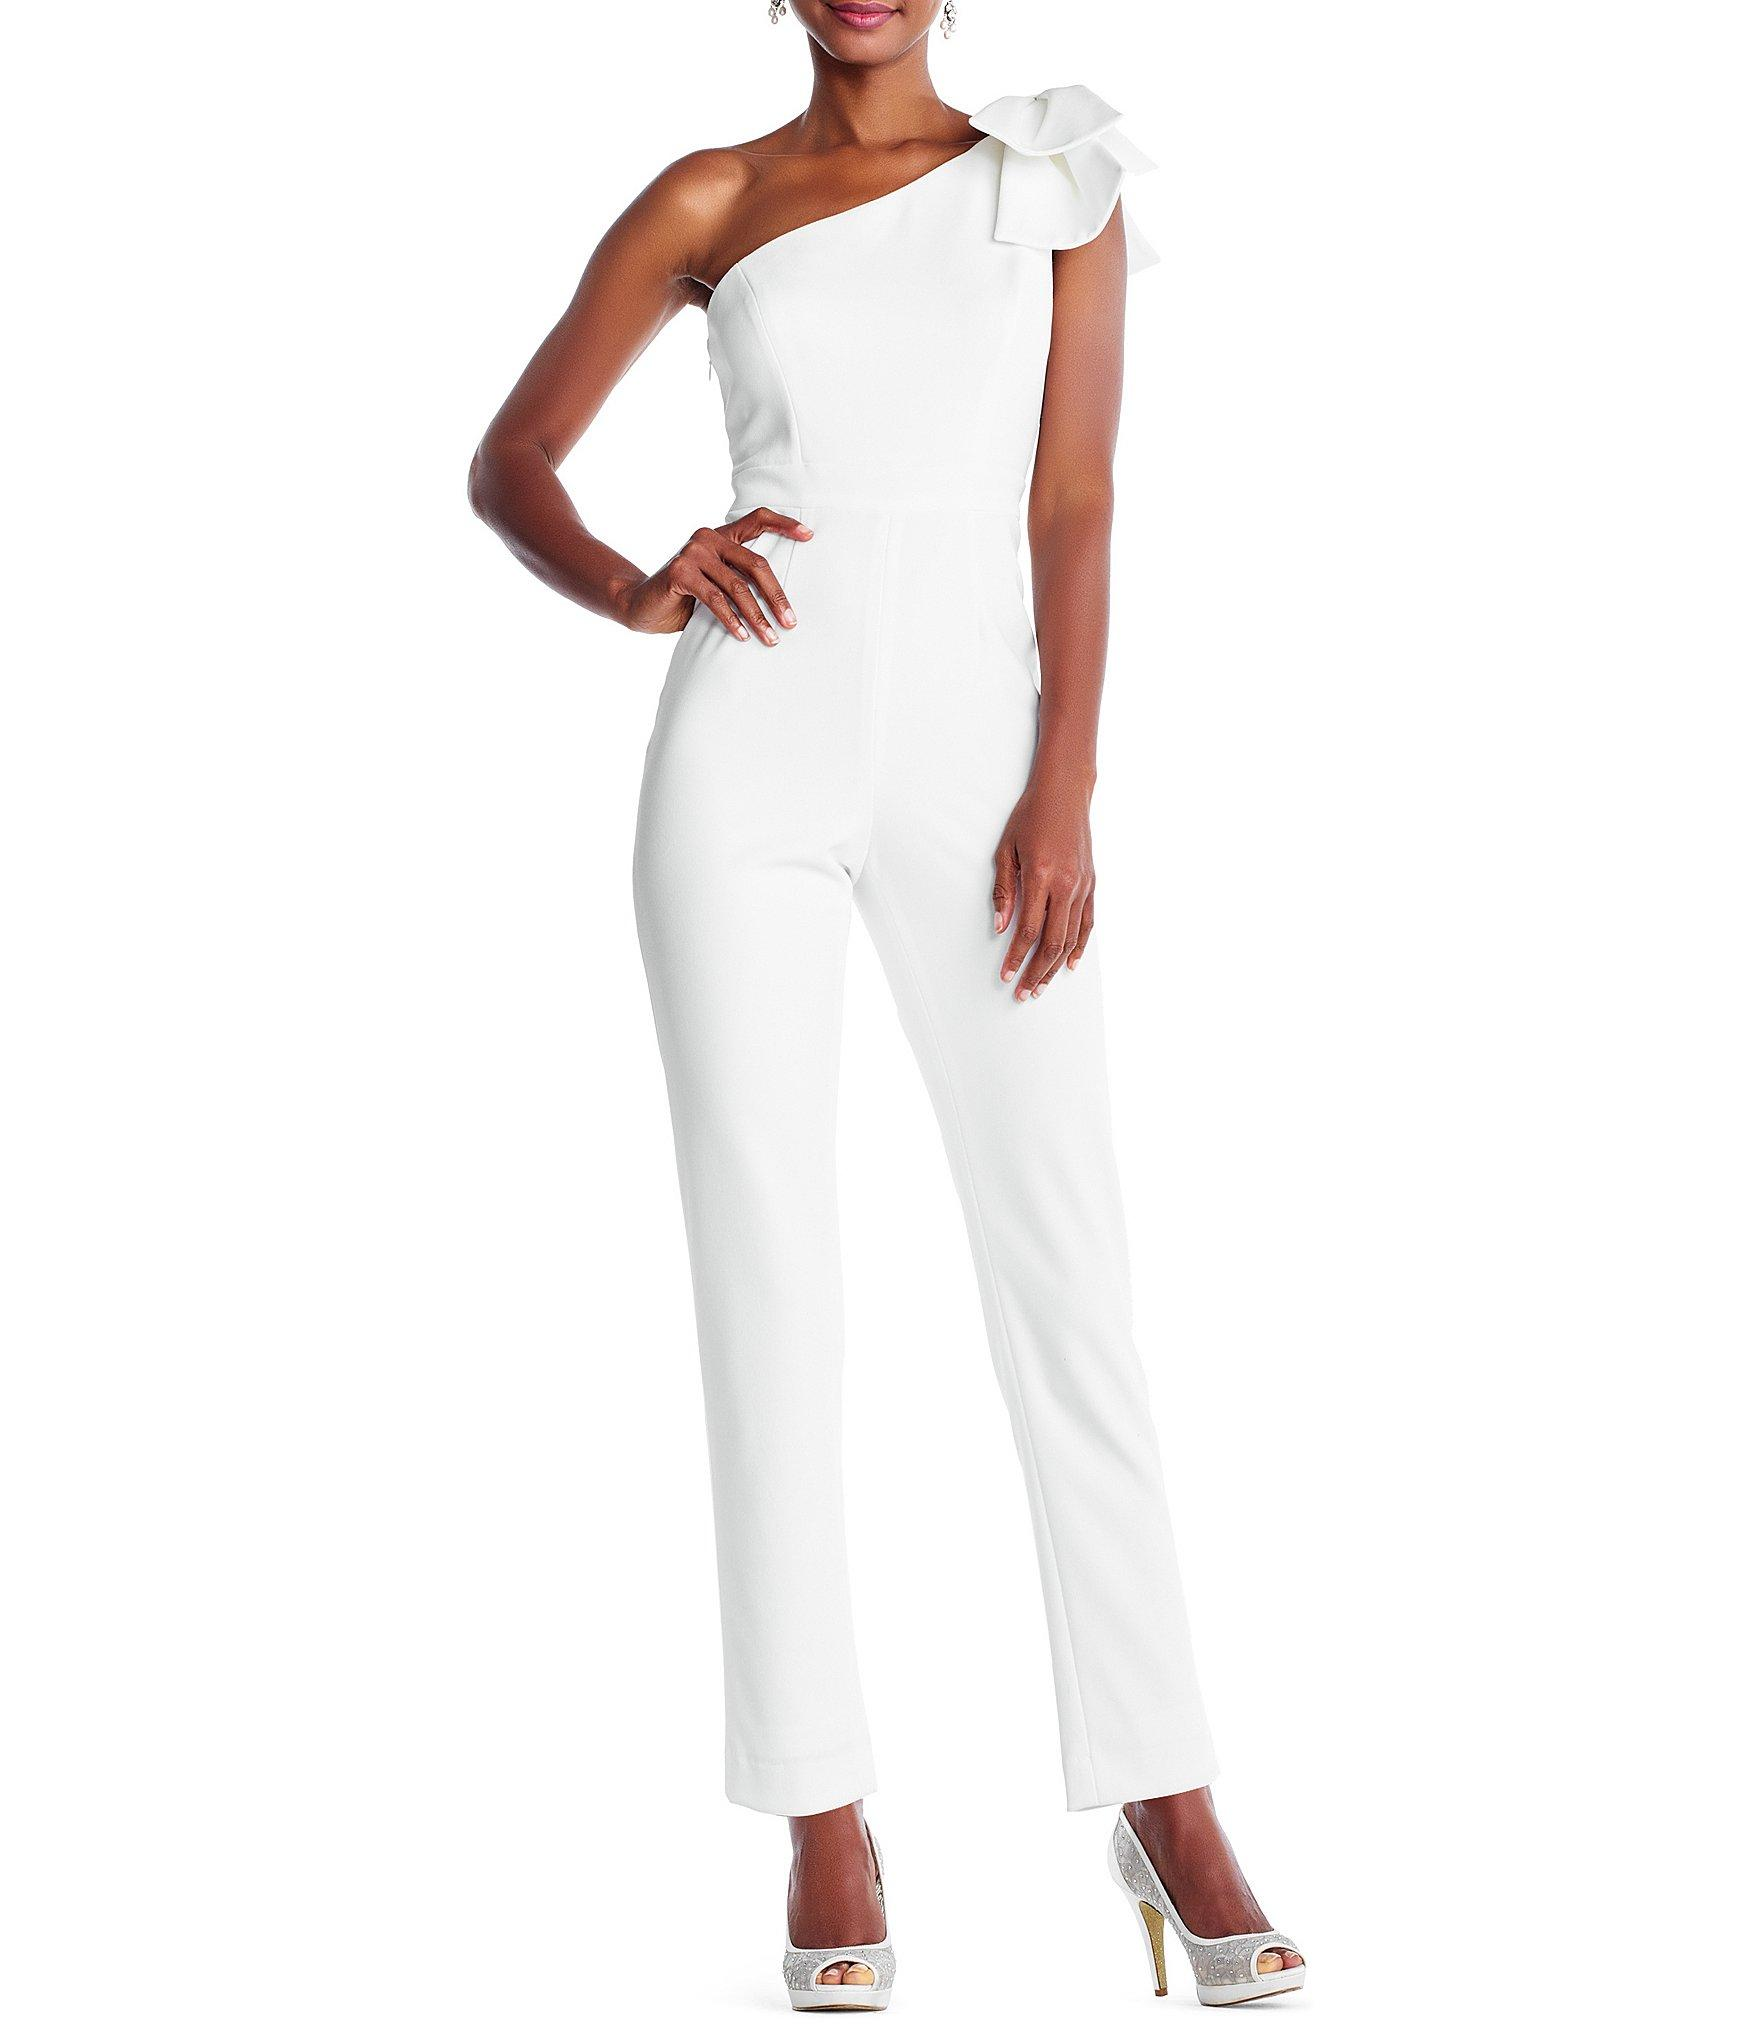 38462d7897d Lyst - Adrianna Papell Petite Size One-shoulder Bow Jumpsuit in ...